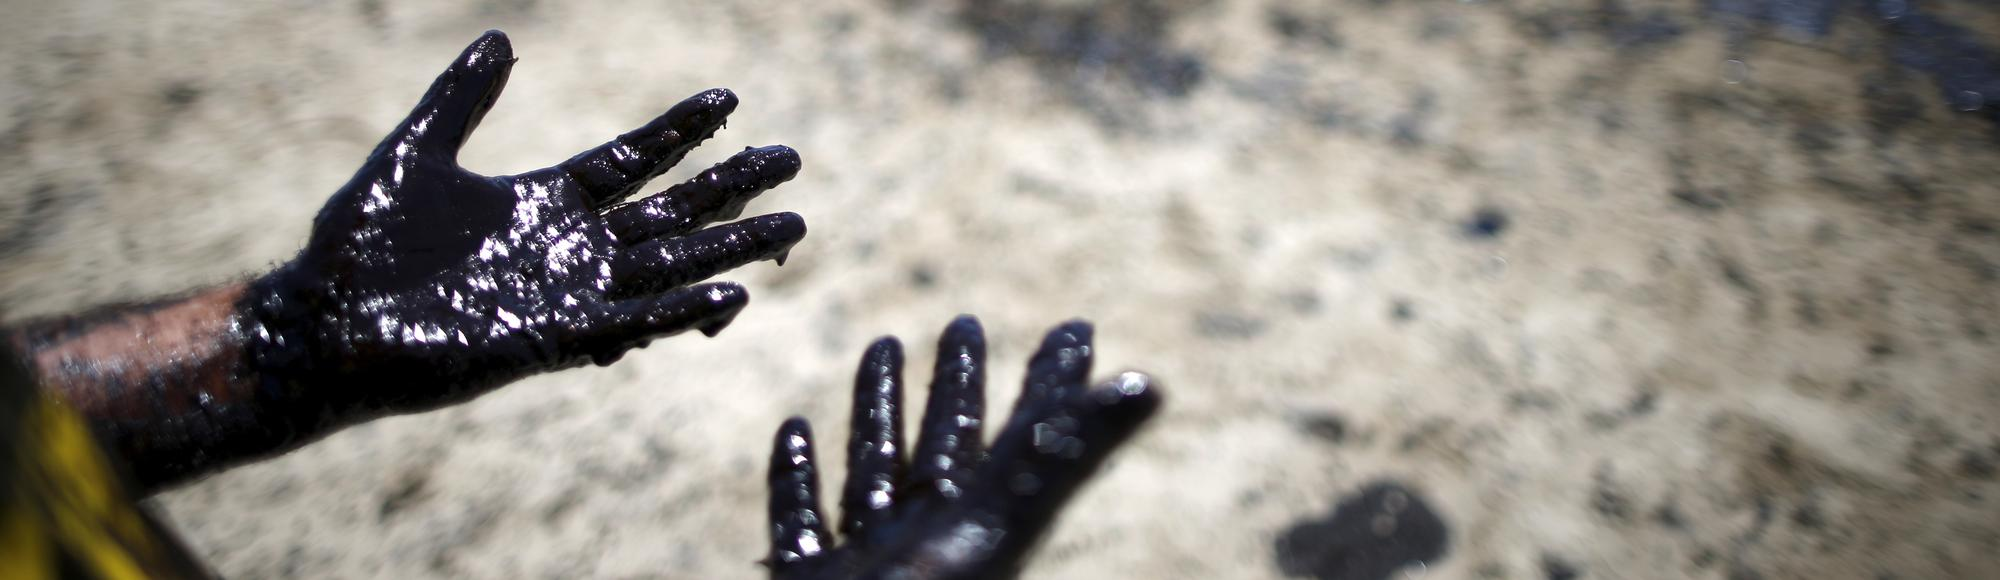 Texas Pipeline Company Admits Santa Barbara Oil Spill Was 40 Percent Larger Than Estimated